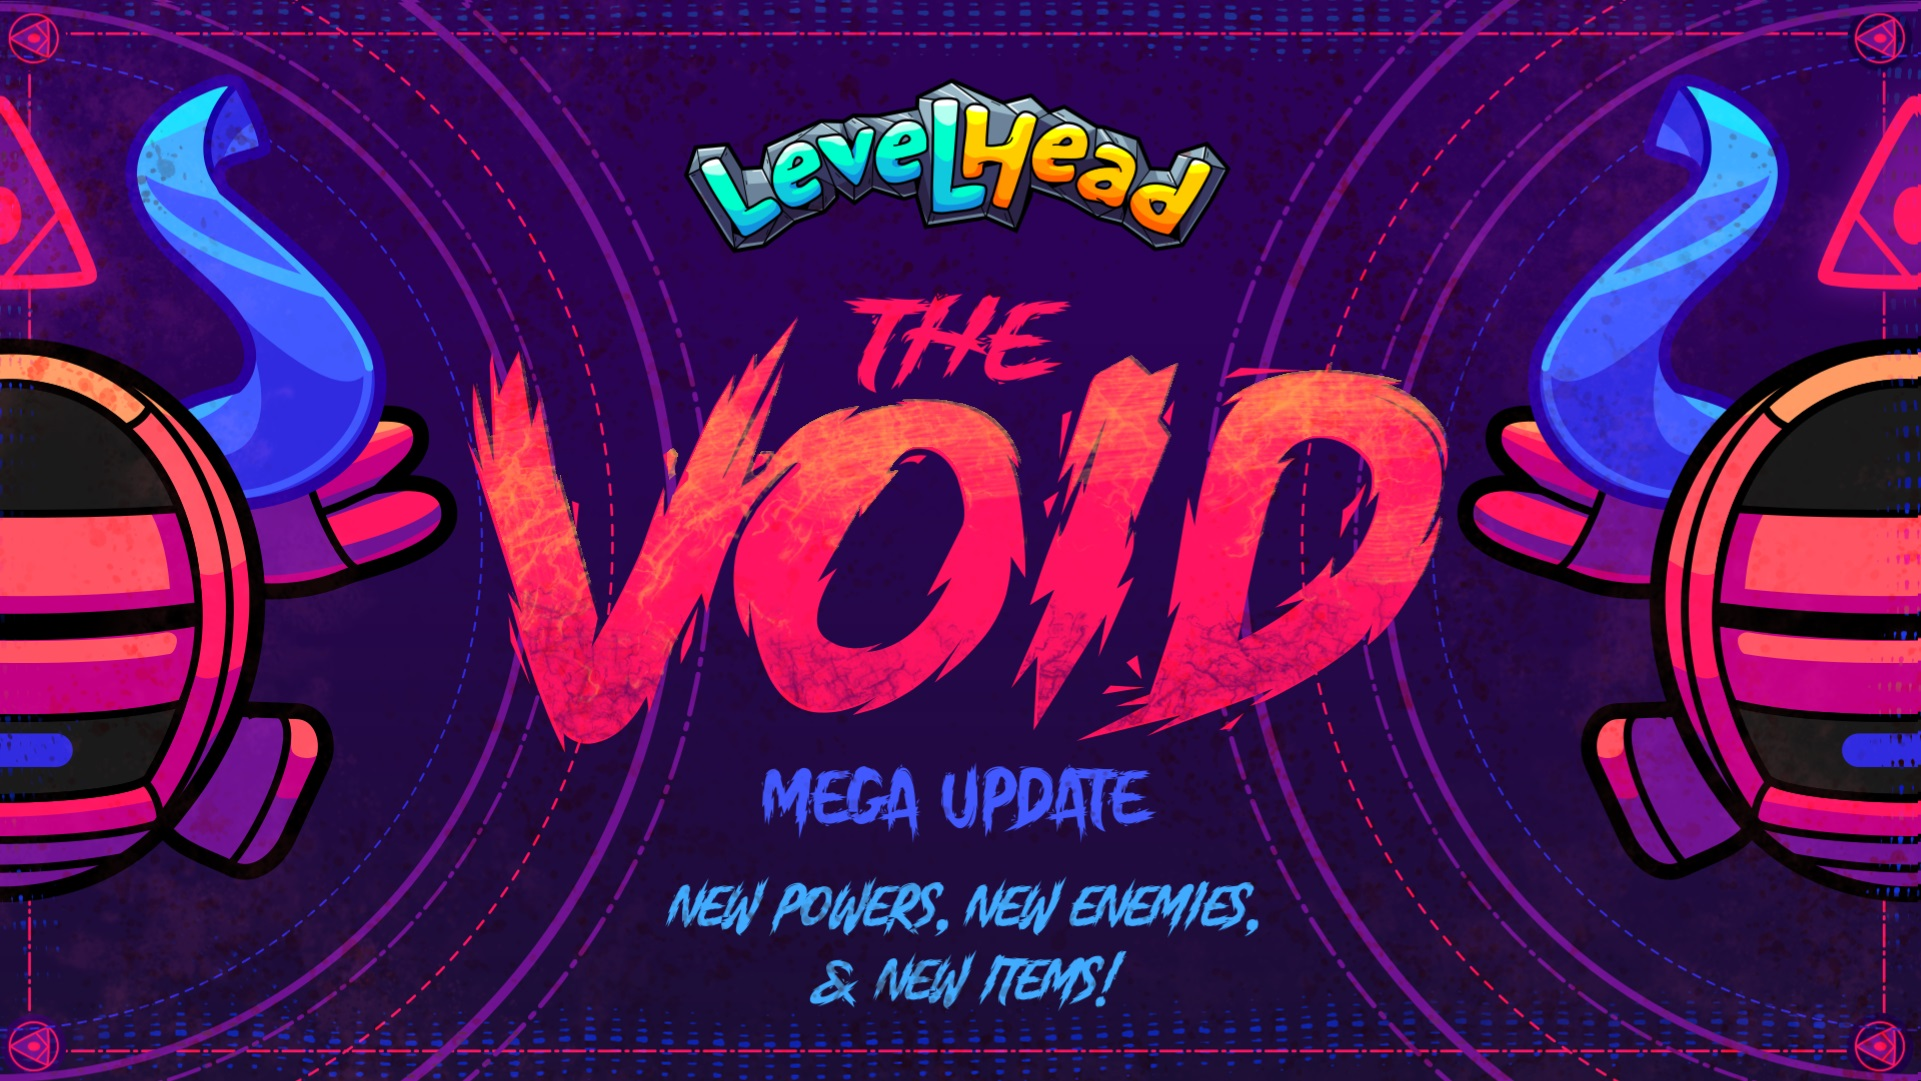 LevelHead the Void